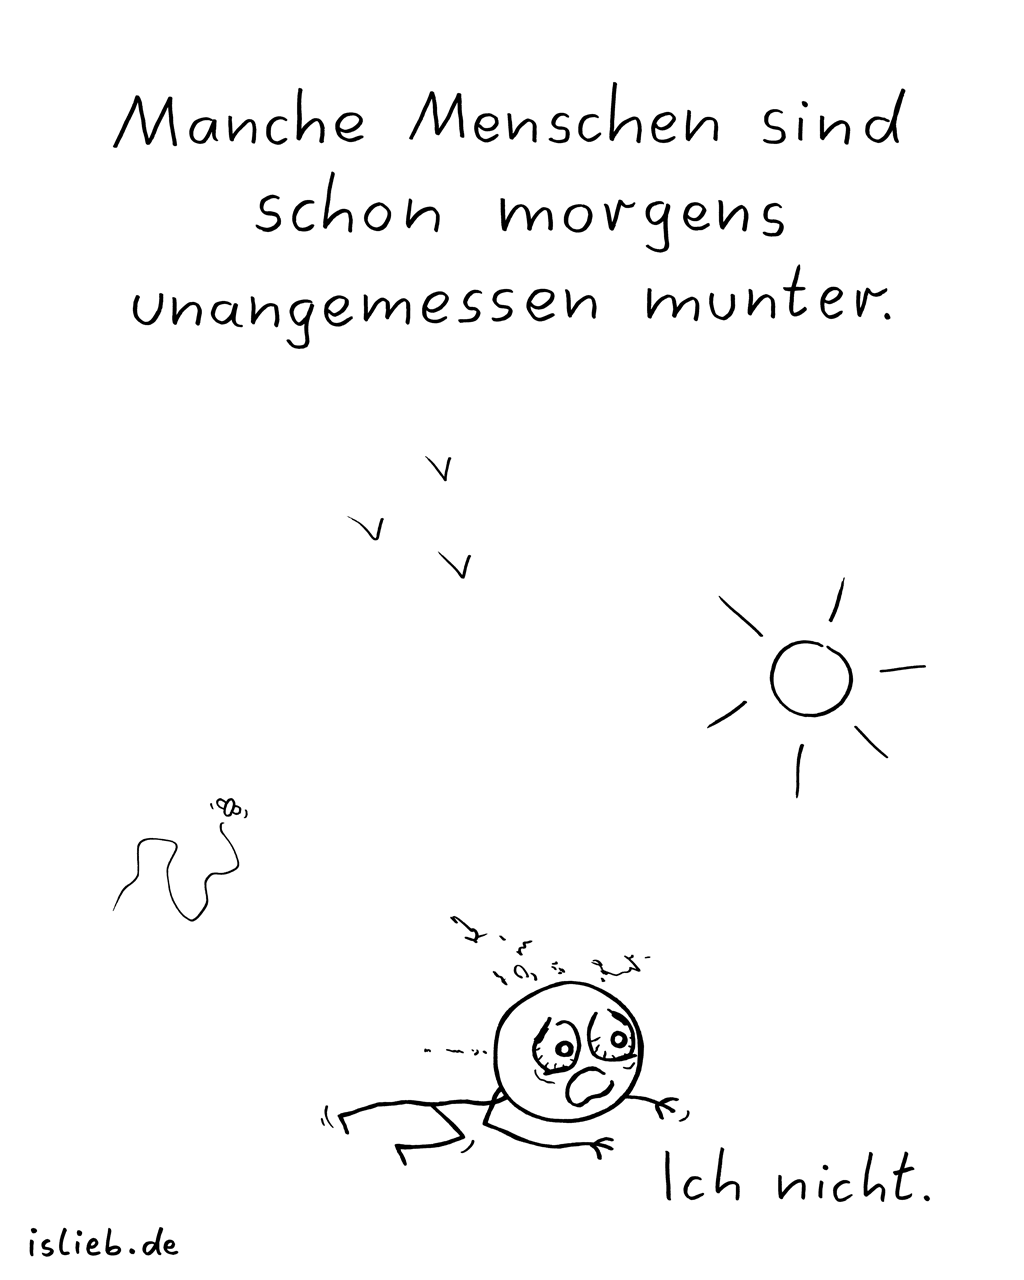 Morgens | Guten-Morgen-Cartoon | is lieb?